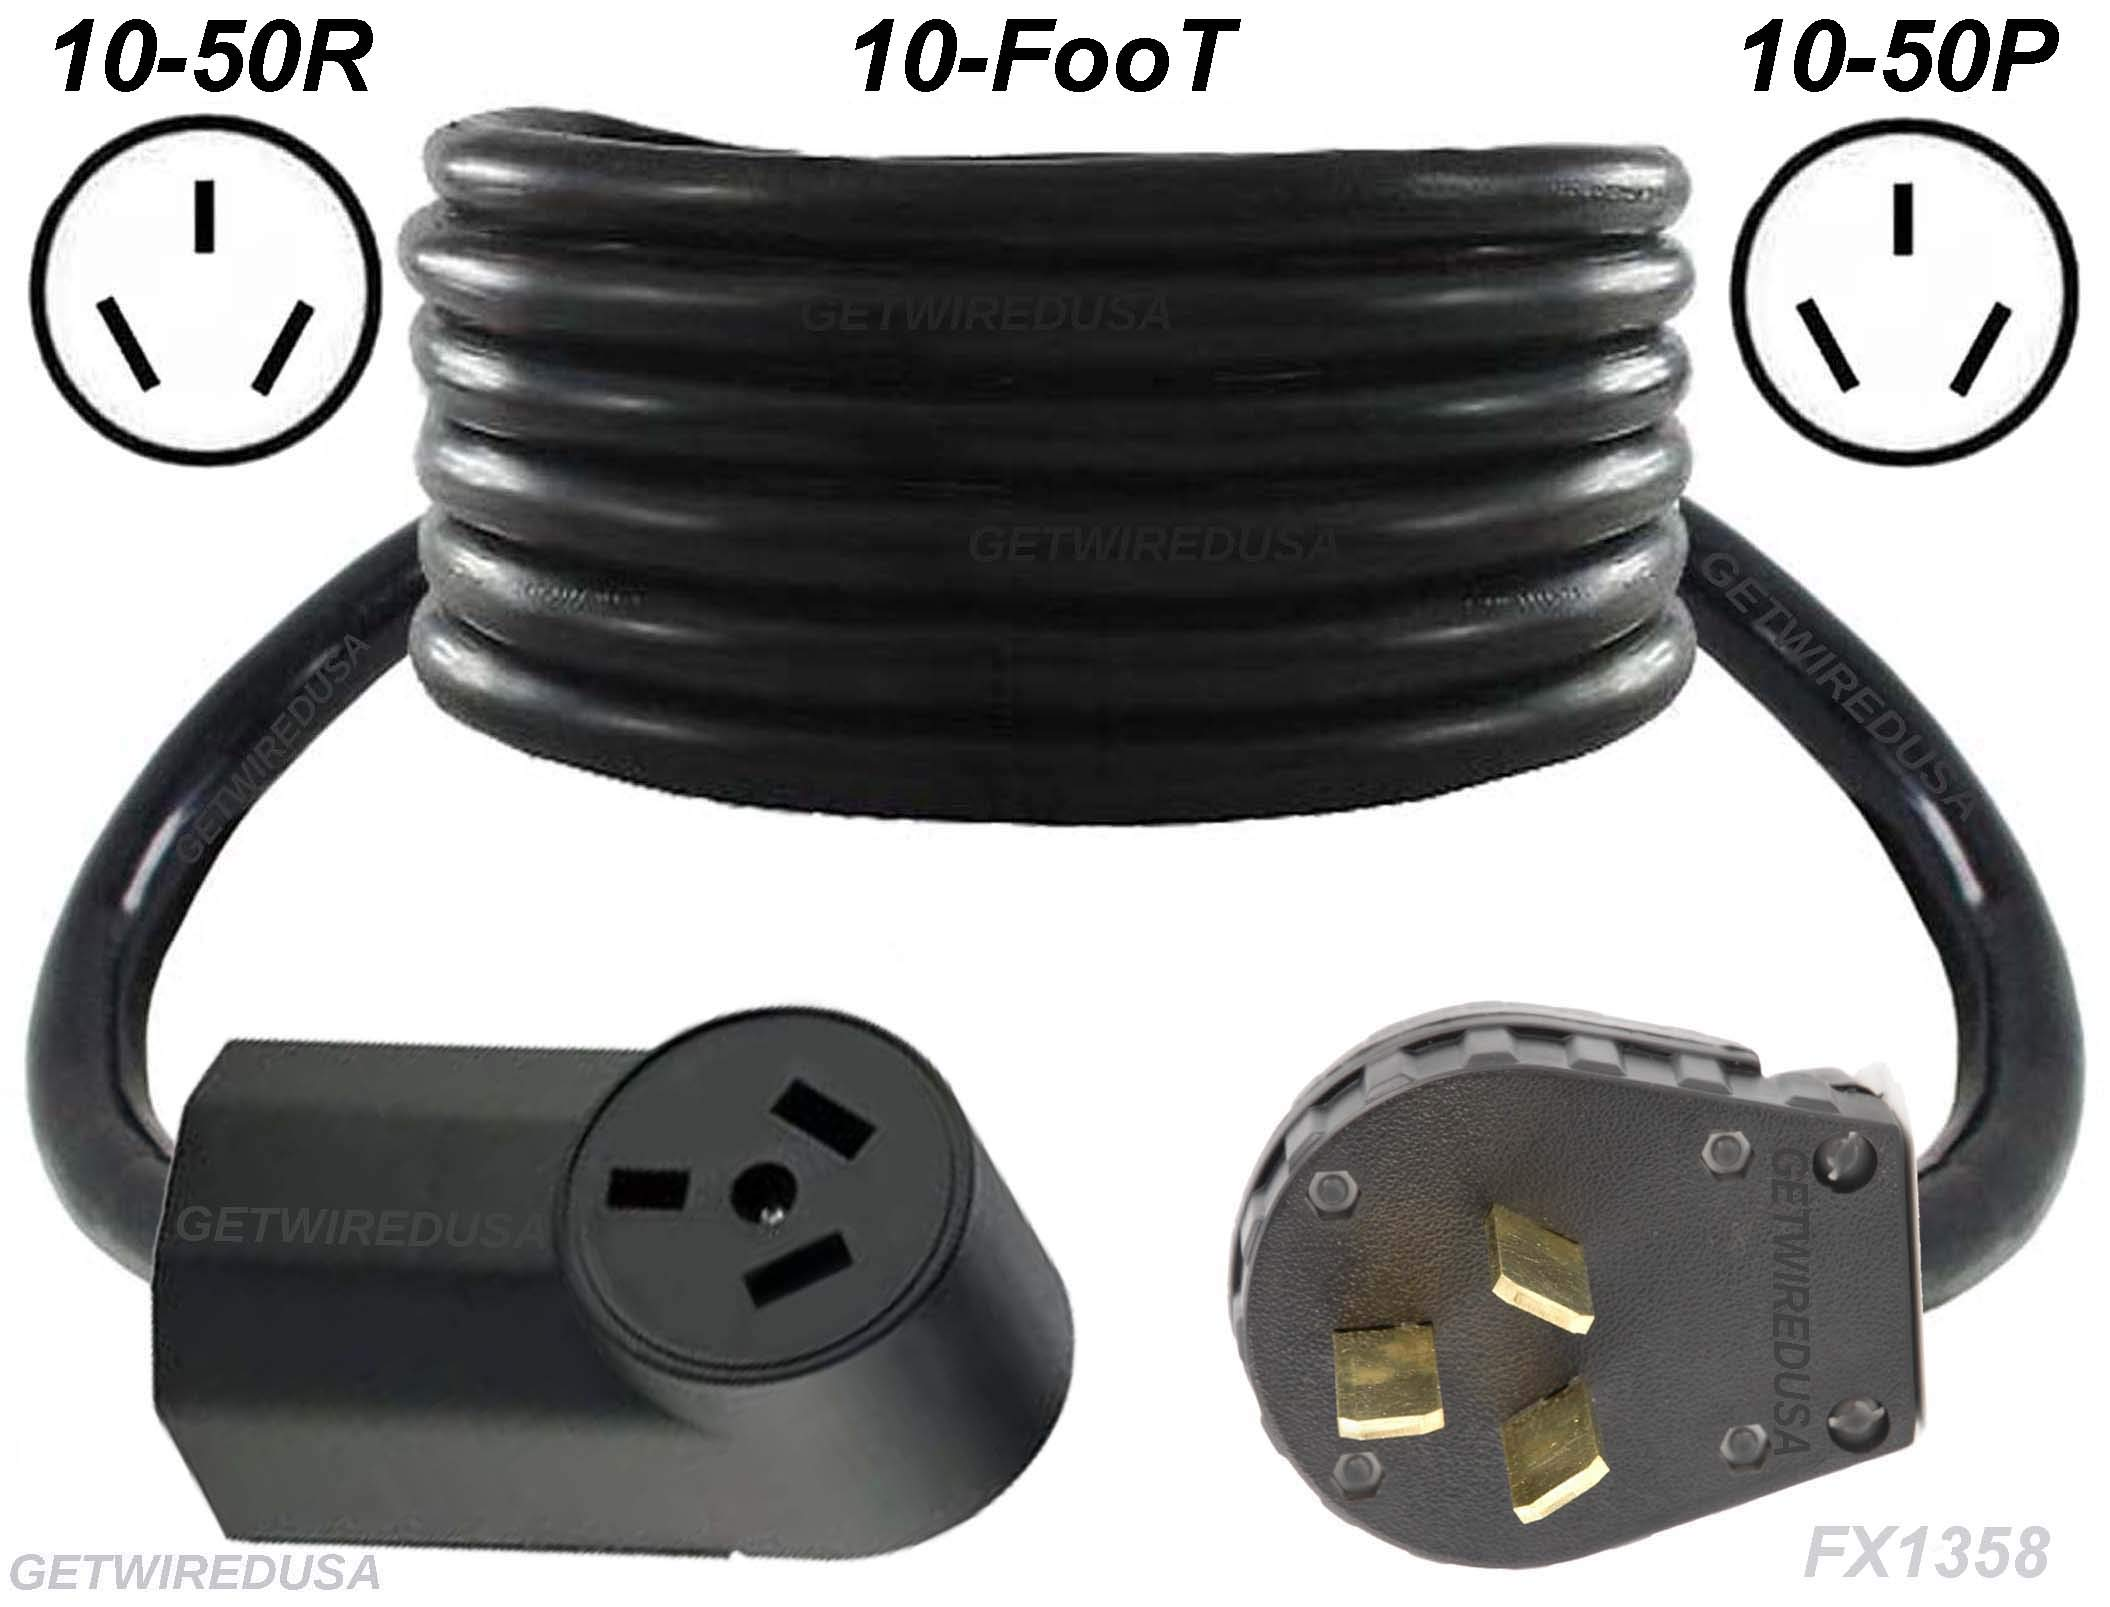 Range, Stove, Oven, 10-FT Extension Cord 10-50P Male 3-Pin Plug To 10-50R Female Receptacle, Heavy Duty, Real Copper Wire, 10/3 10AWG 10-Gauge, NEMA, 10-Feet Long, Made In American, FX1358-R by getwiredusa